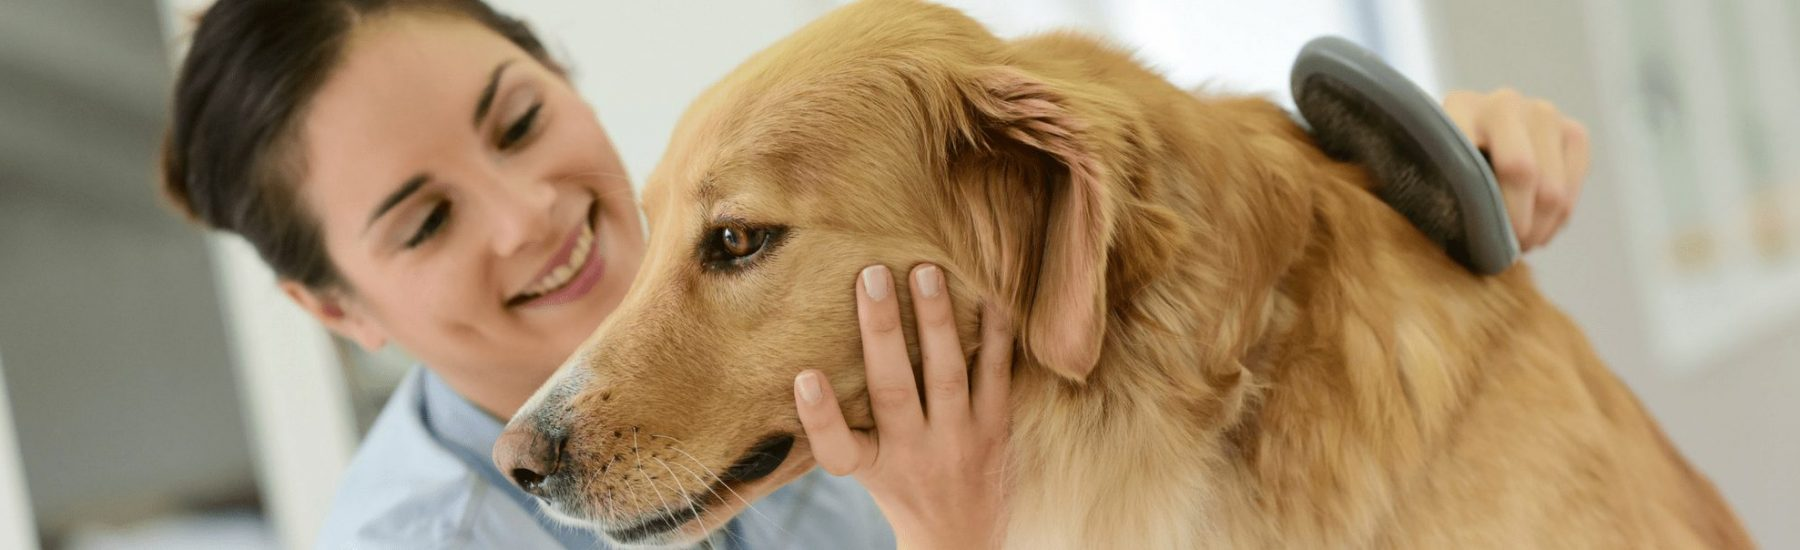 A dog being groomed with a brush